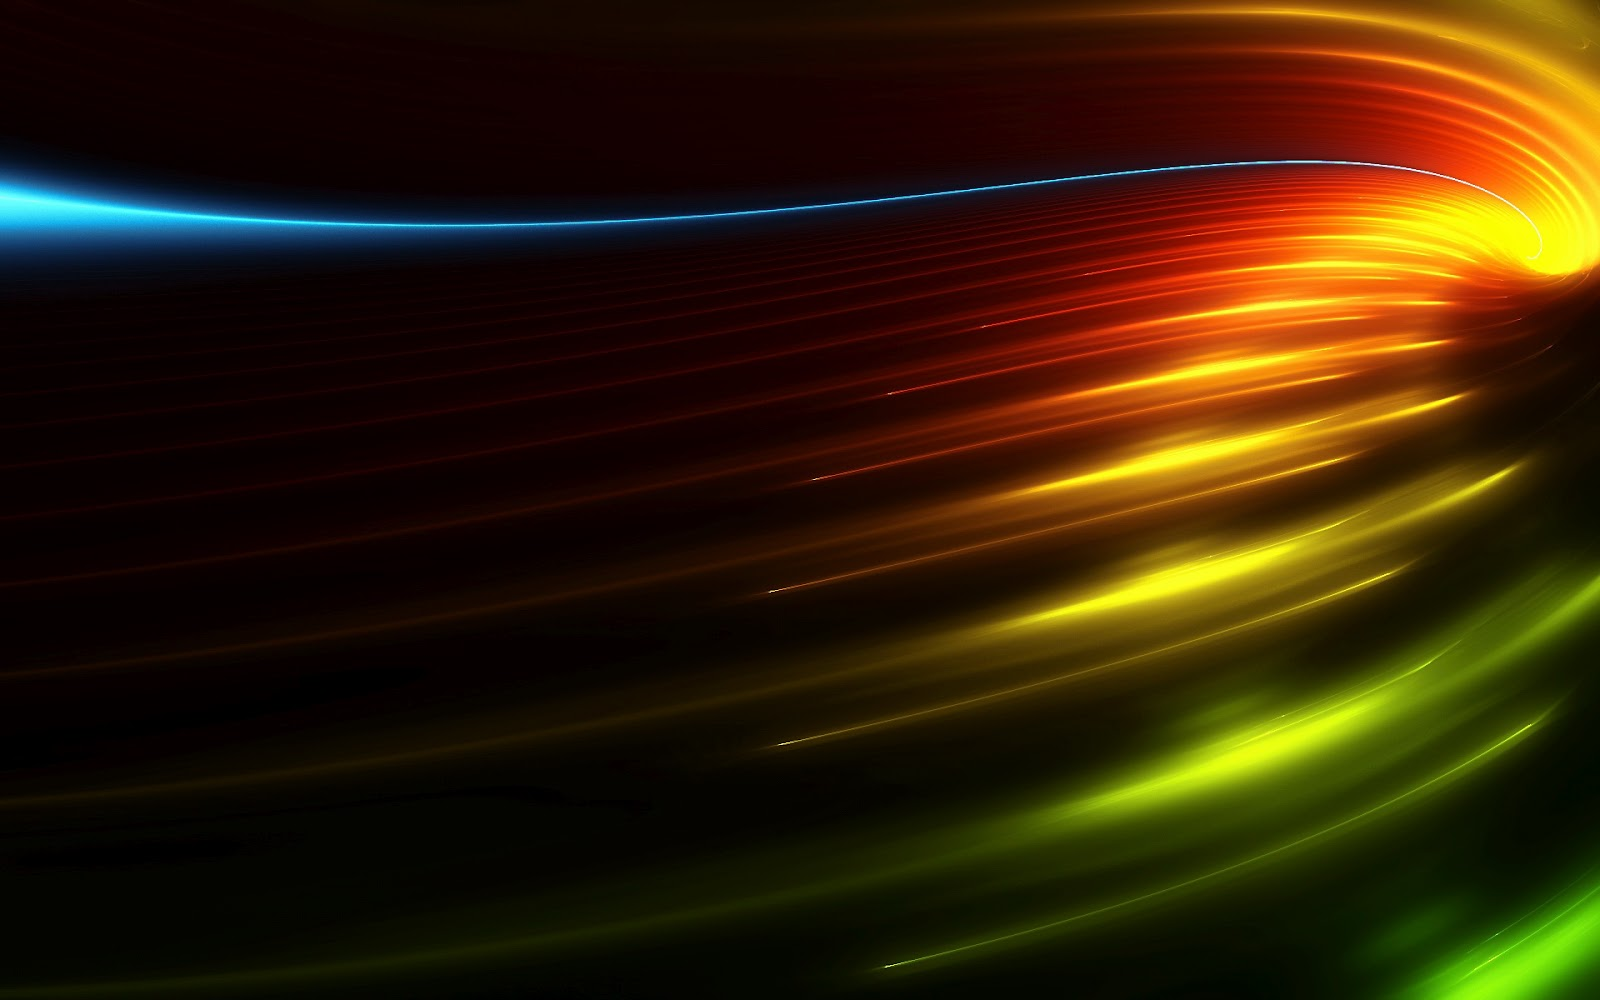 abstract wallpapers widescreen abstract wallpapers widescreen abstract 1600x1000